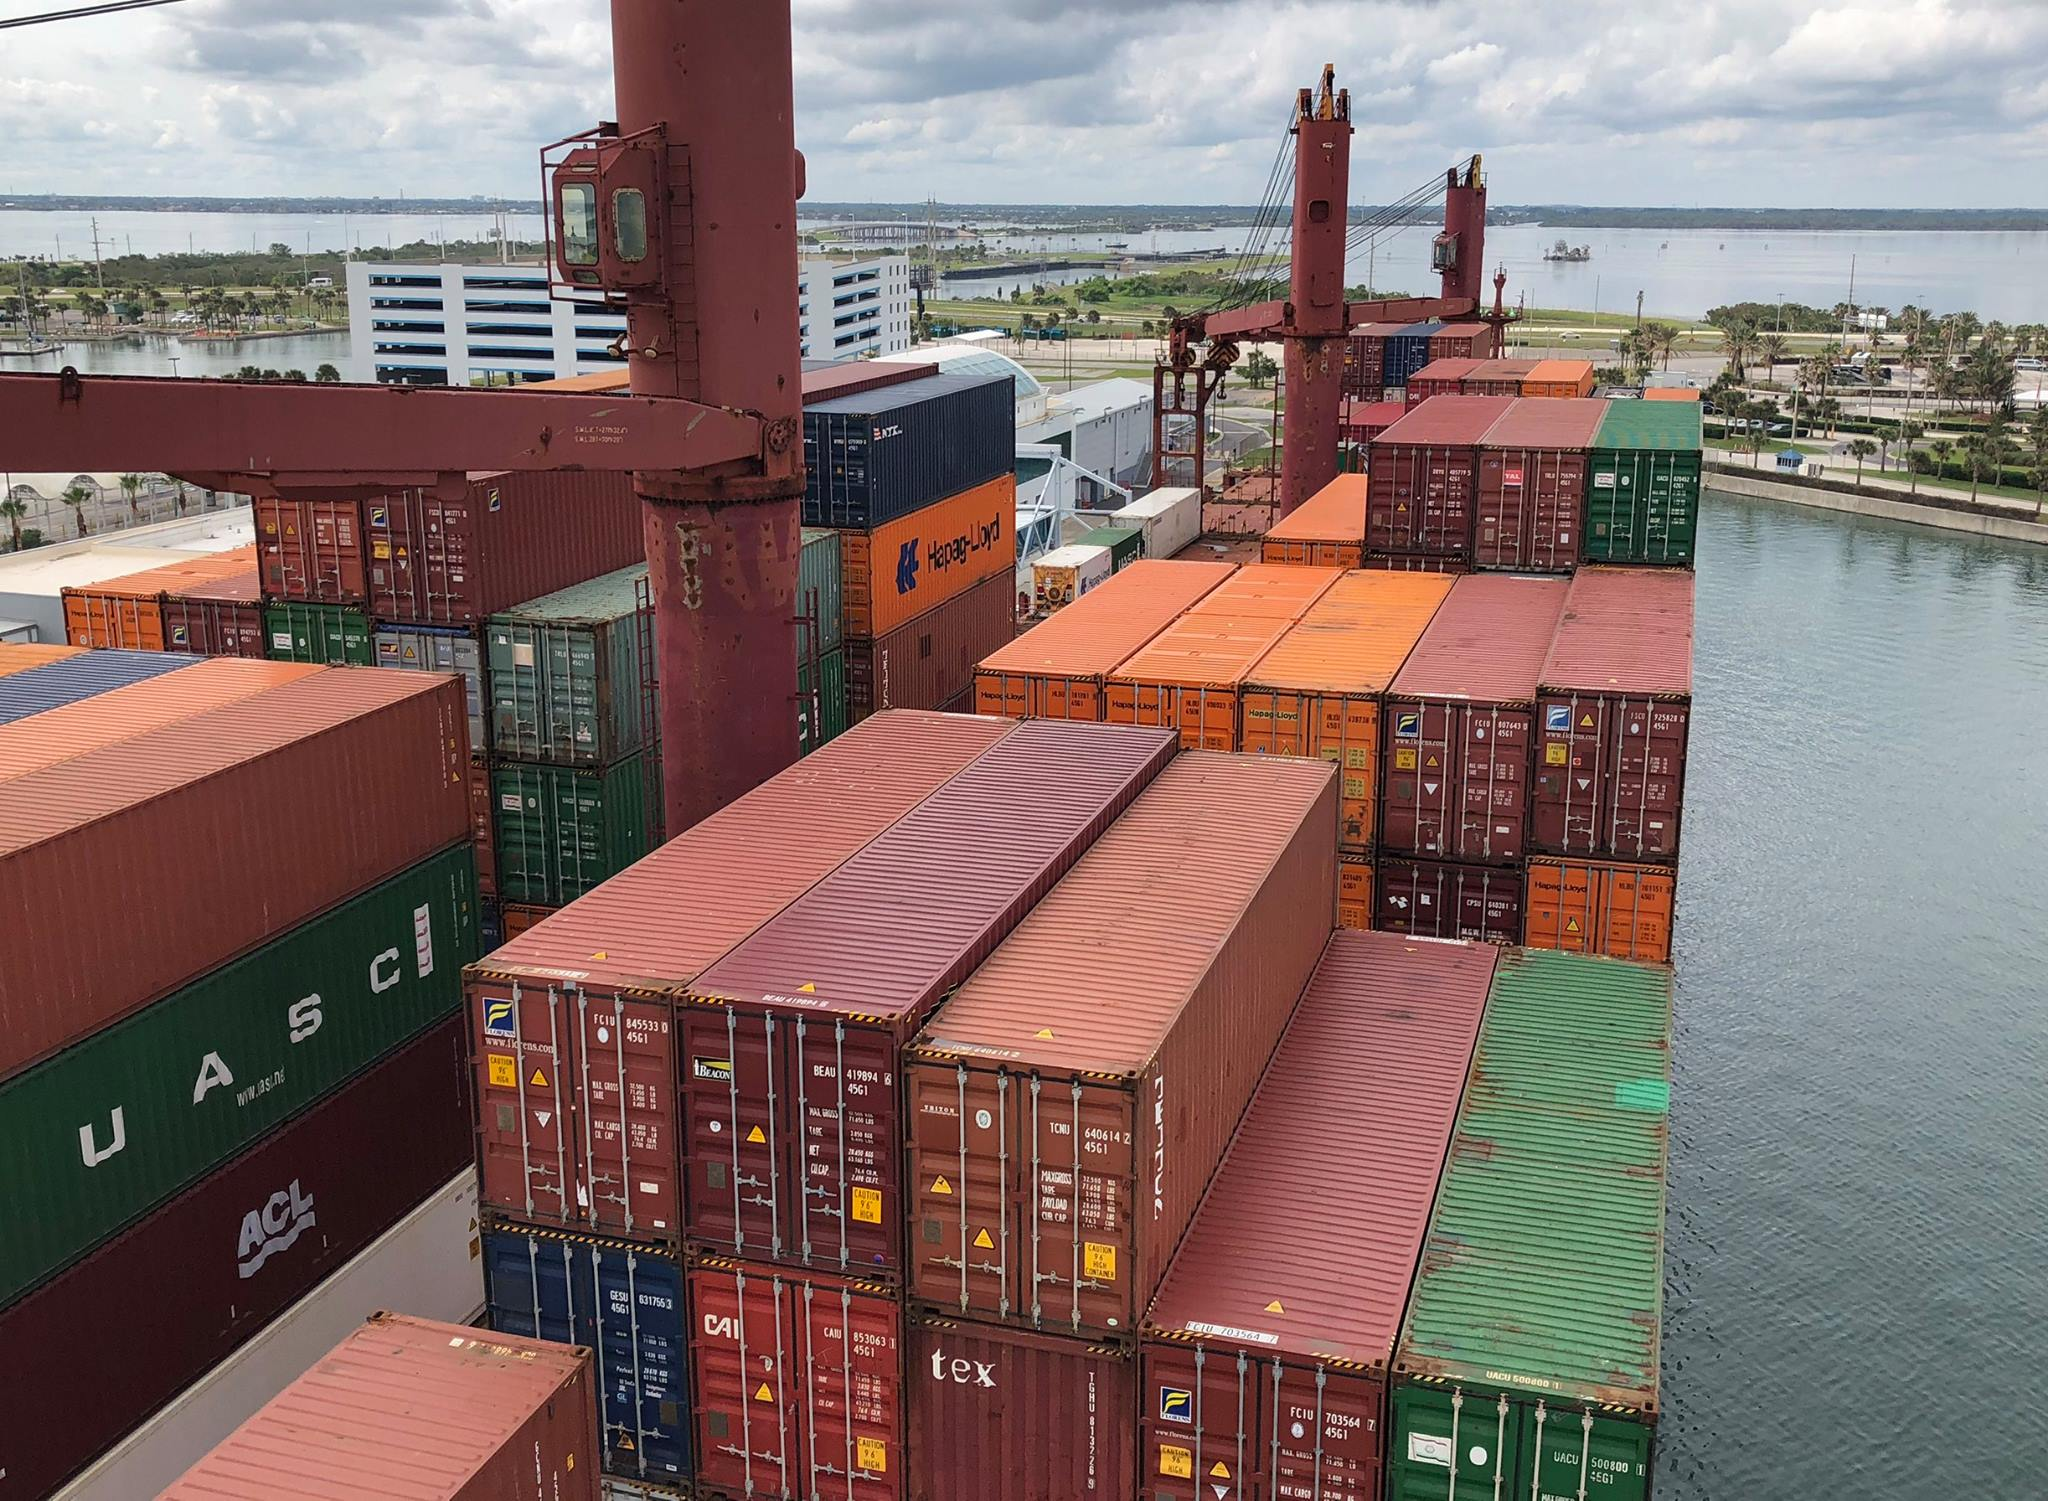 Container ship at Port Canaveral's Gulftainer cargo container terminal